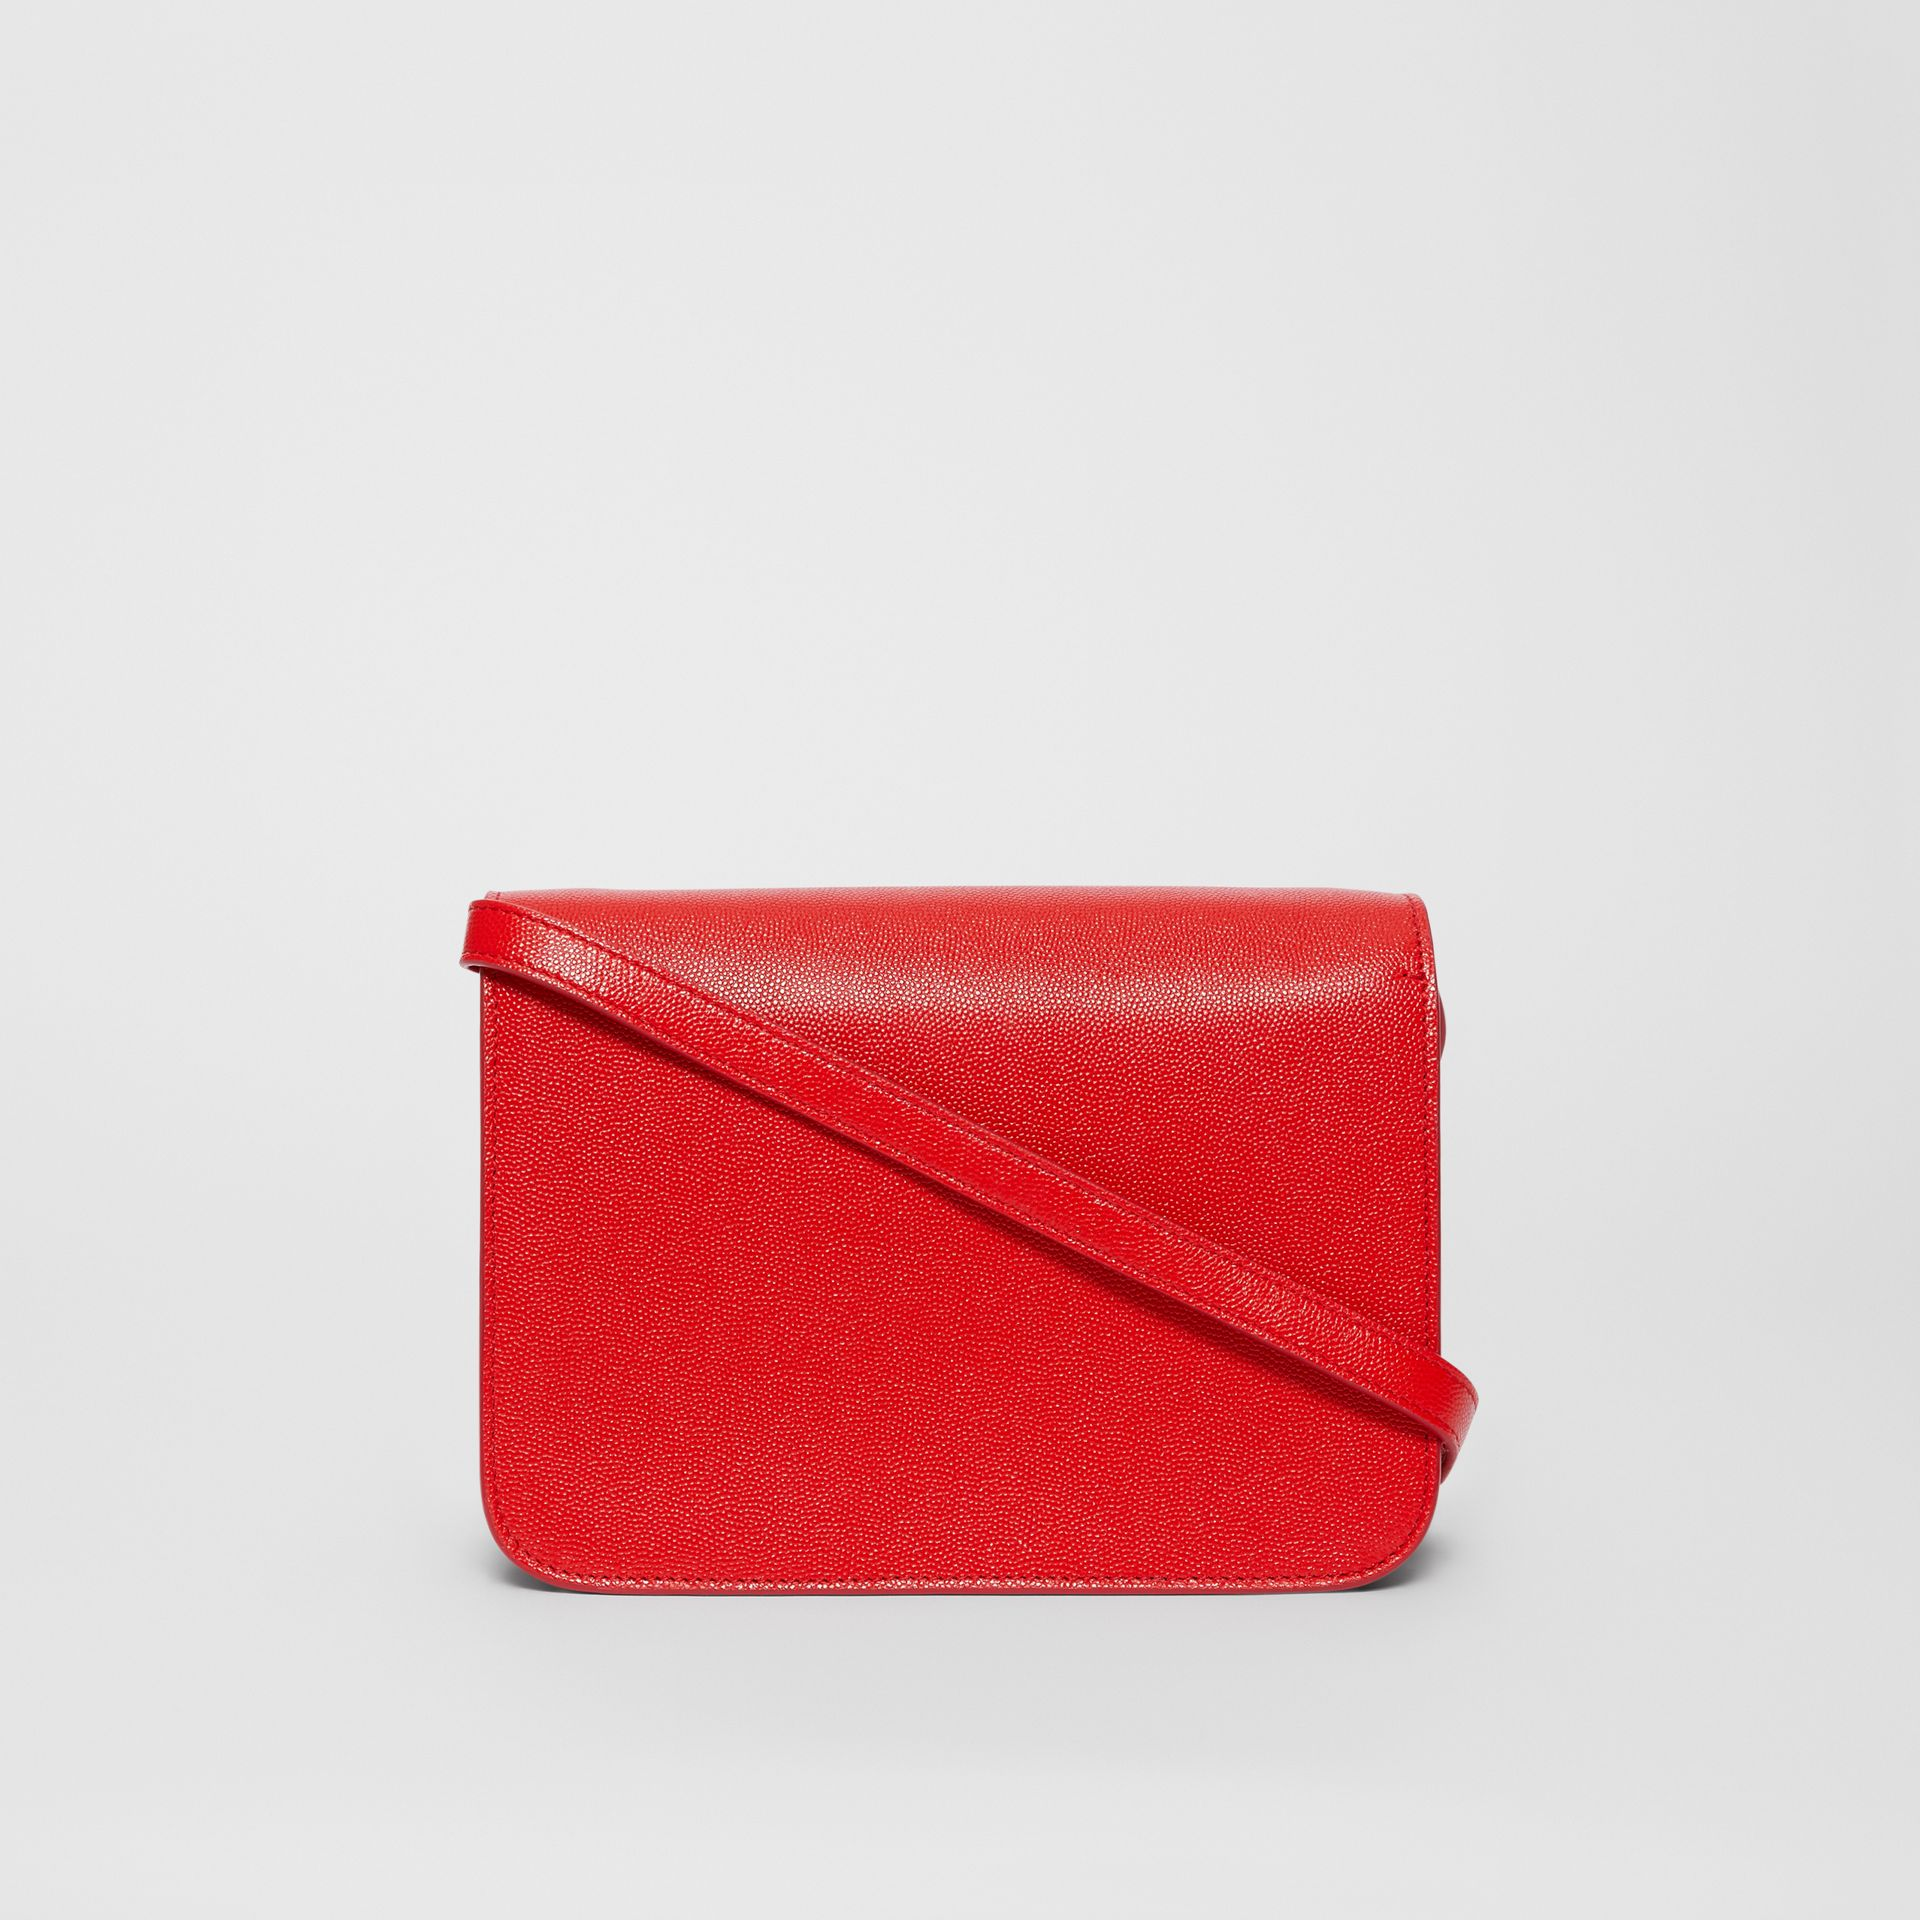 Small Grainy Leather TB Bag in Bright Red - Women | Burberry United Kingdom - gallery image 7